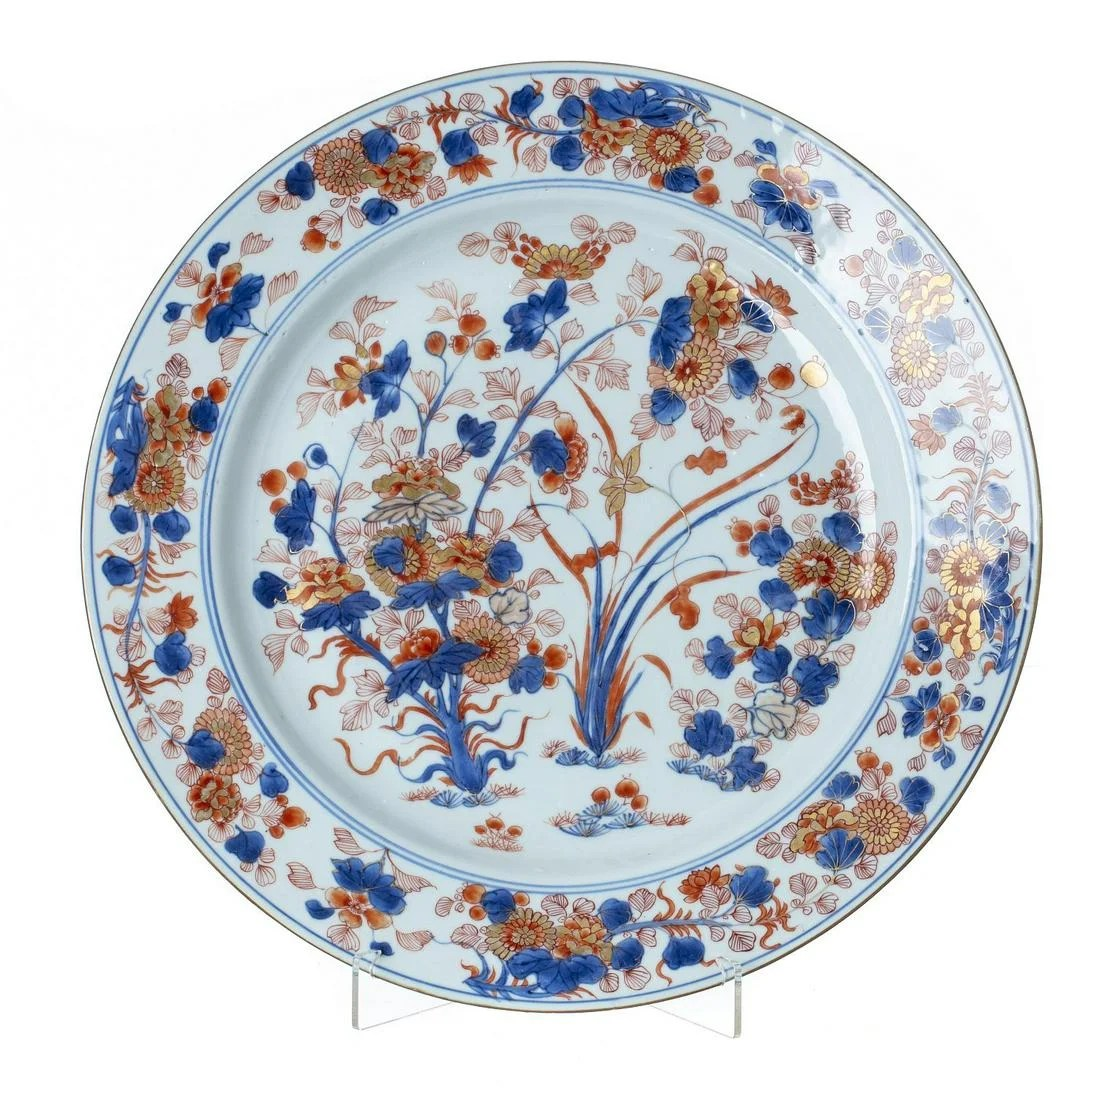 Large Imari plate in Chinese porcelain, Kangxi